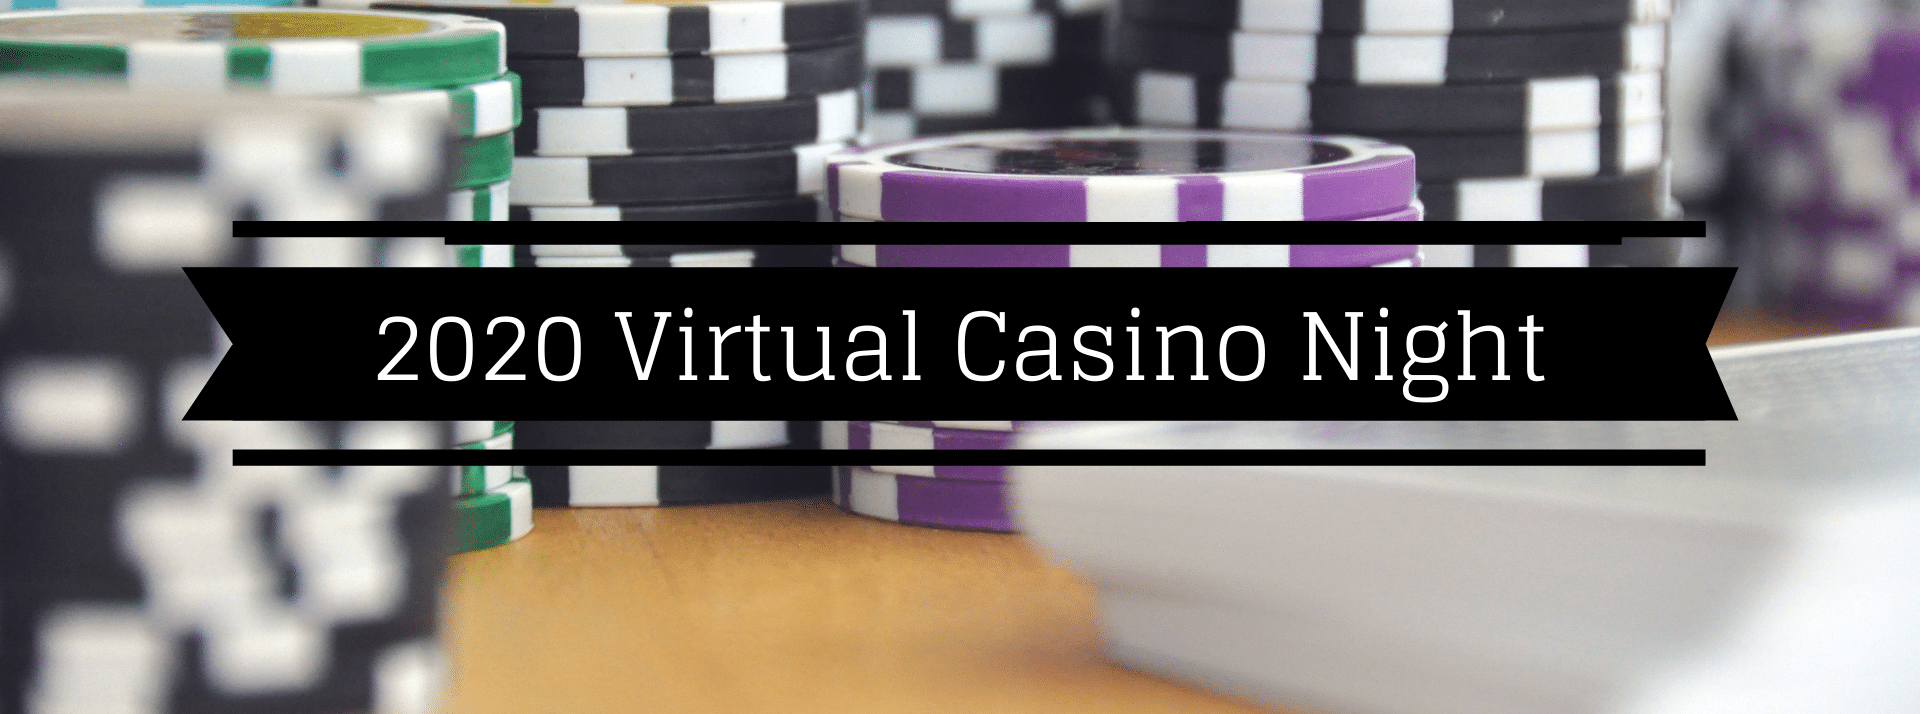 Virtual Casino Night